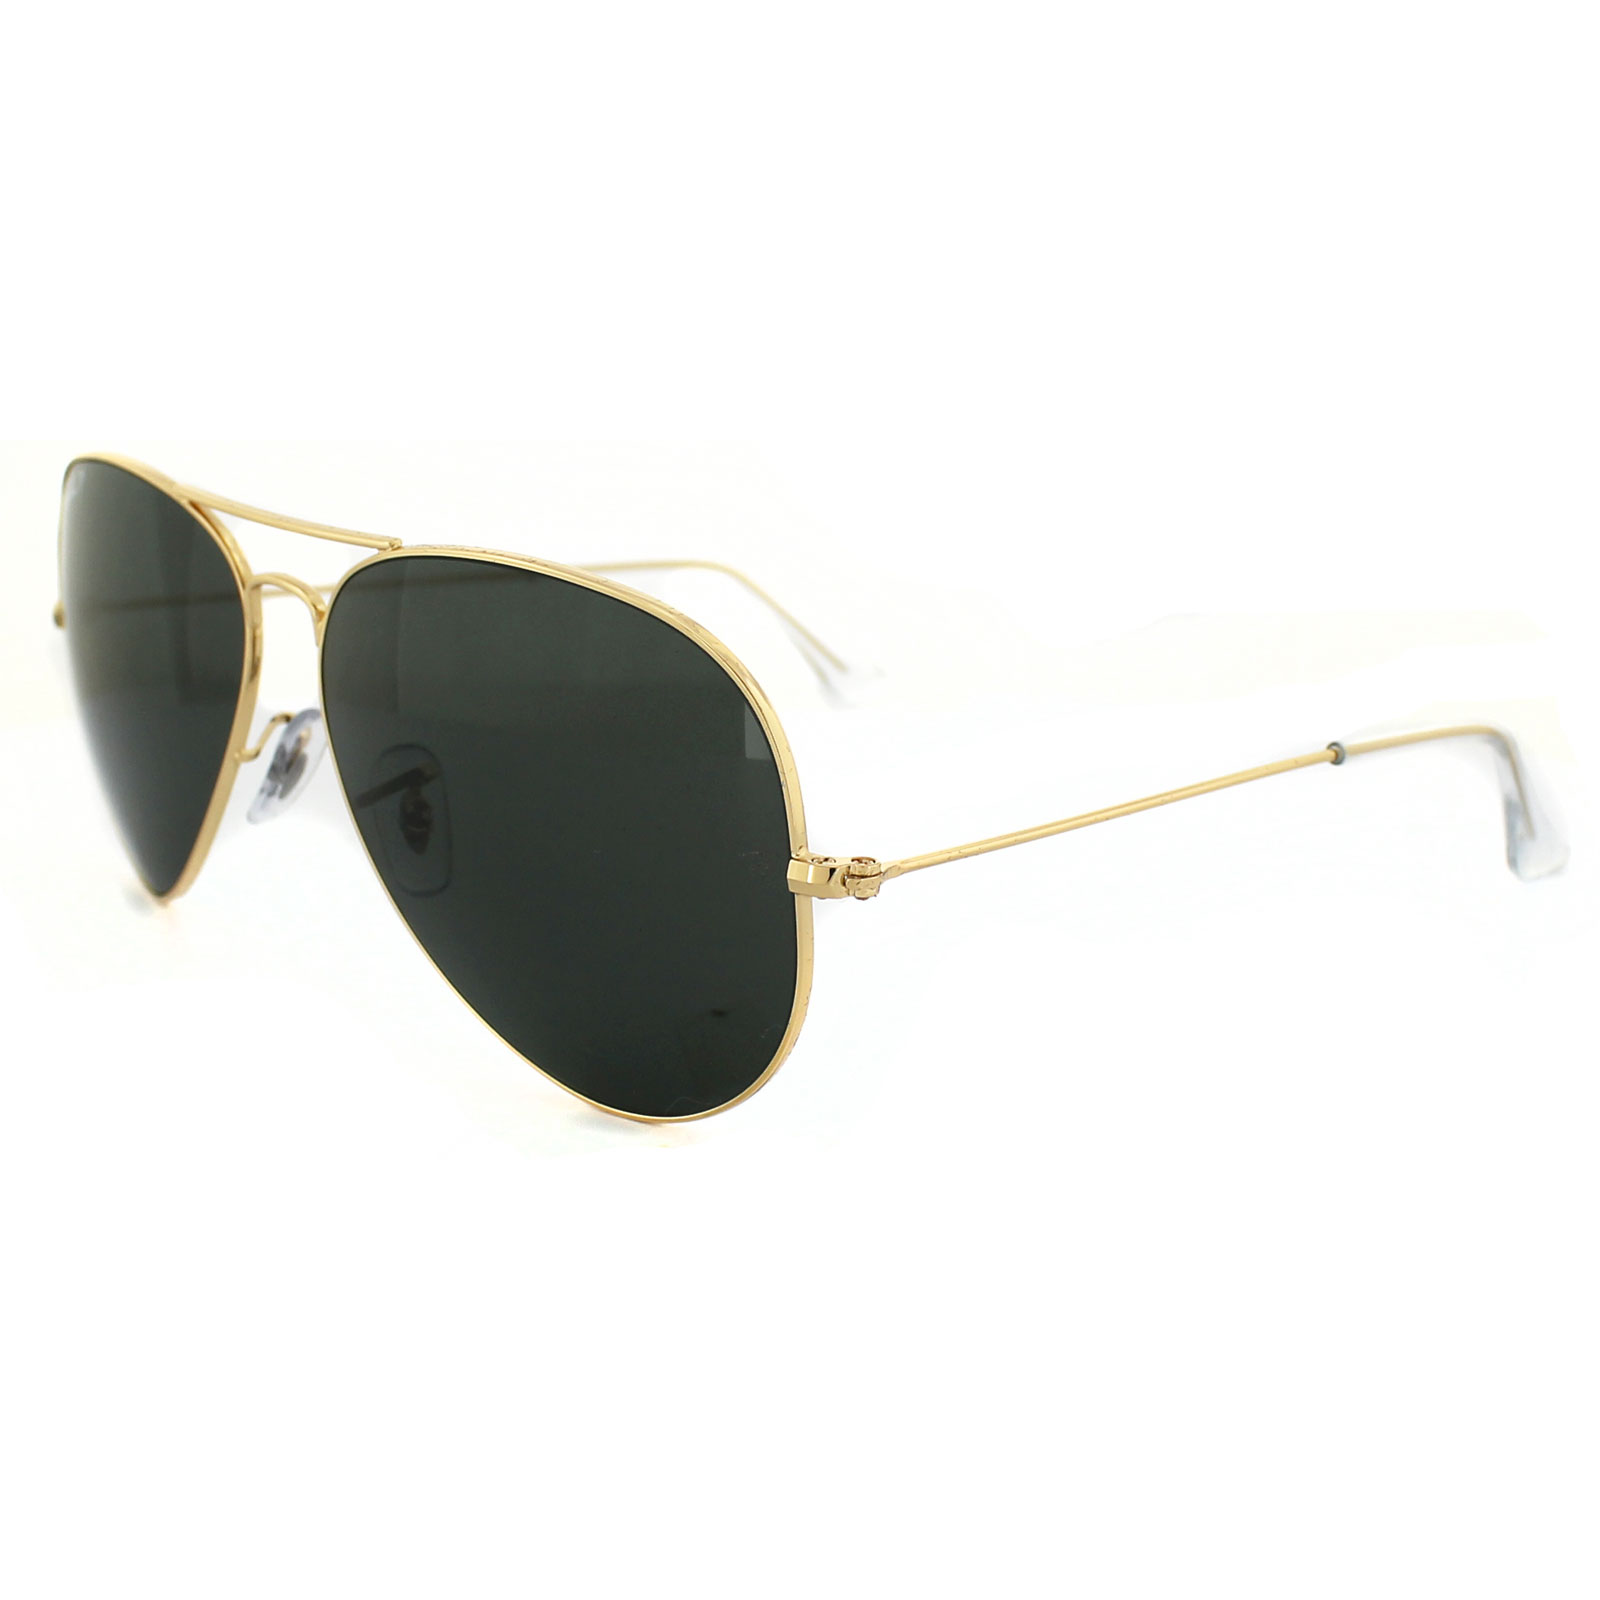 ray ban sunglasses aviator 3025 001 58 gold green polarized large 62mm ebay. Black Bedroom Furniture Sets. Home Design Ideas